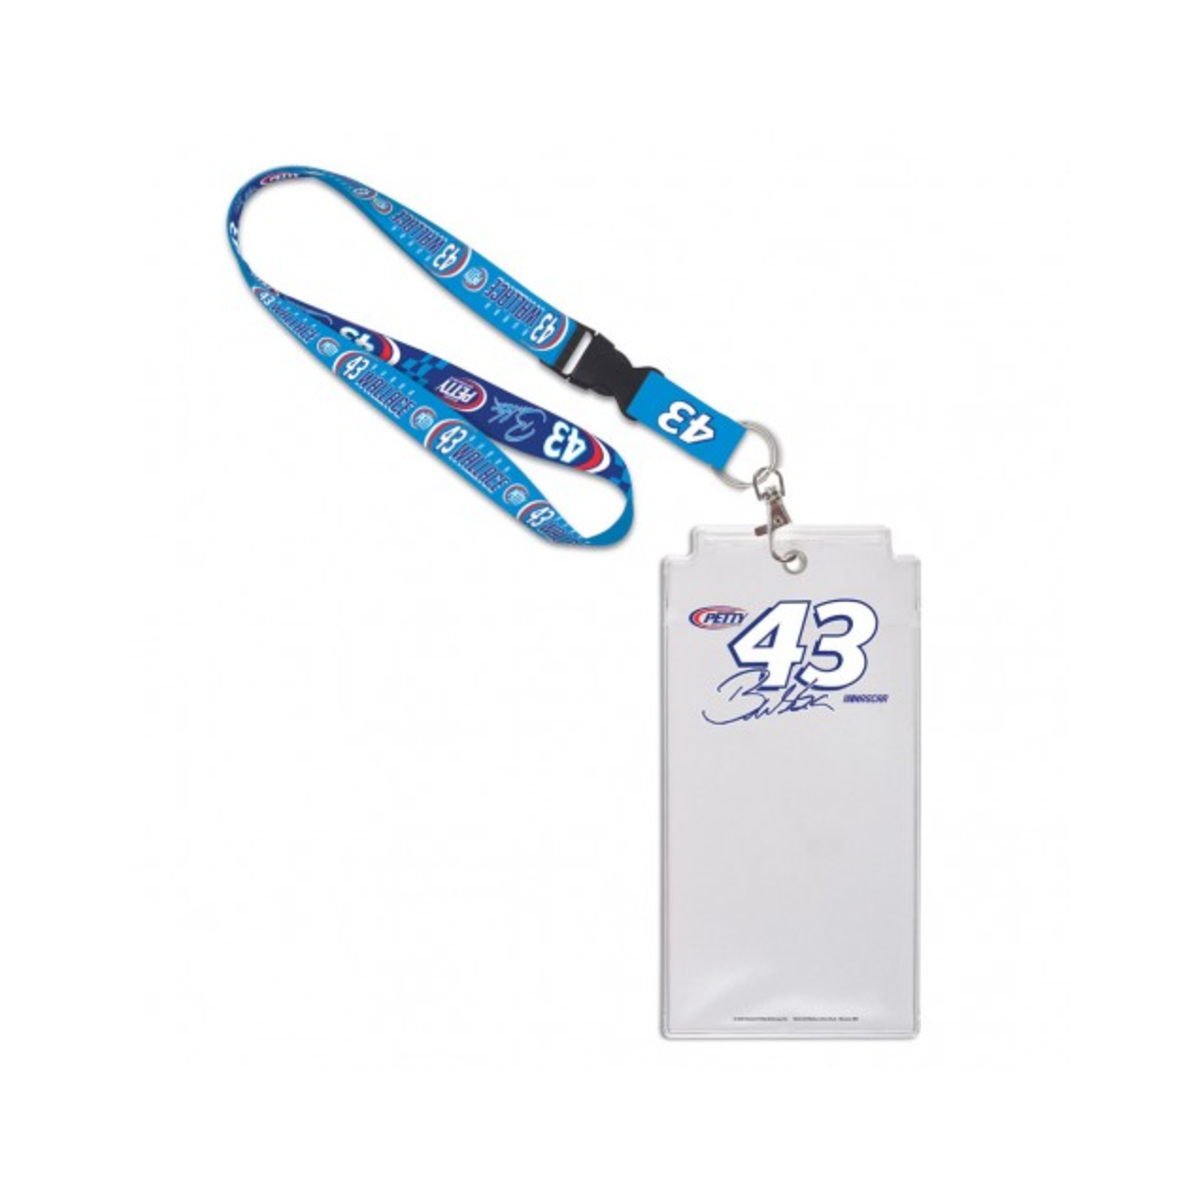 Bubba Wallace #43 2020 Credential Holder with Lanyard